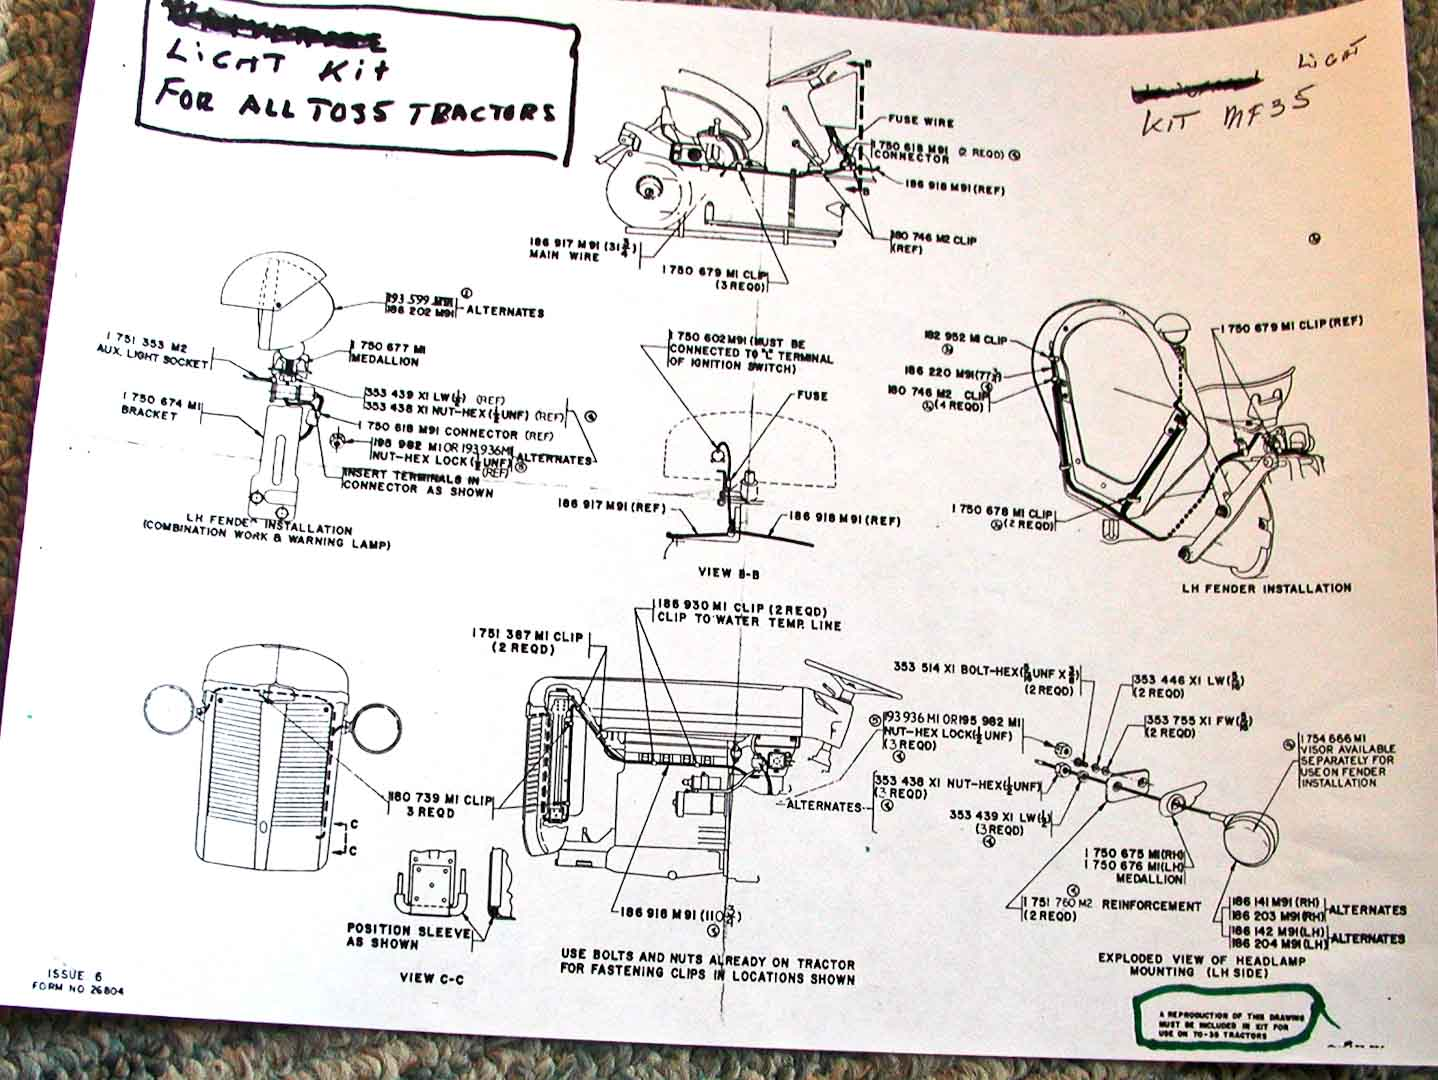 electrical and lighting diagrams \u2013 ferguson enthusiasts ofelectrical and lighting diagrams